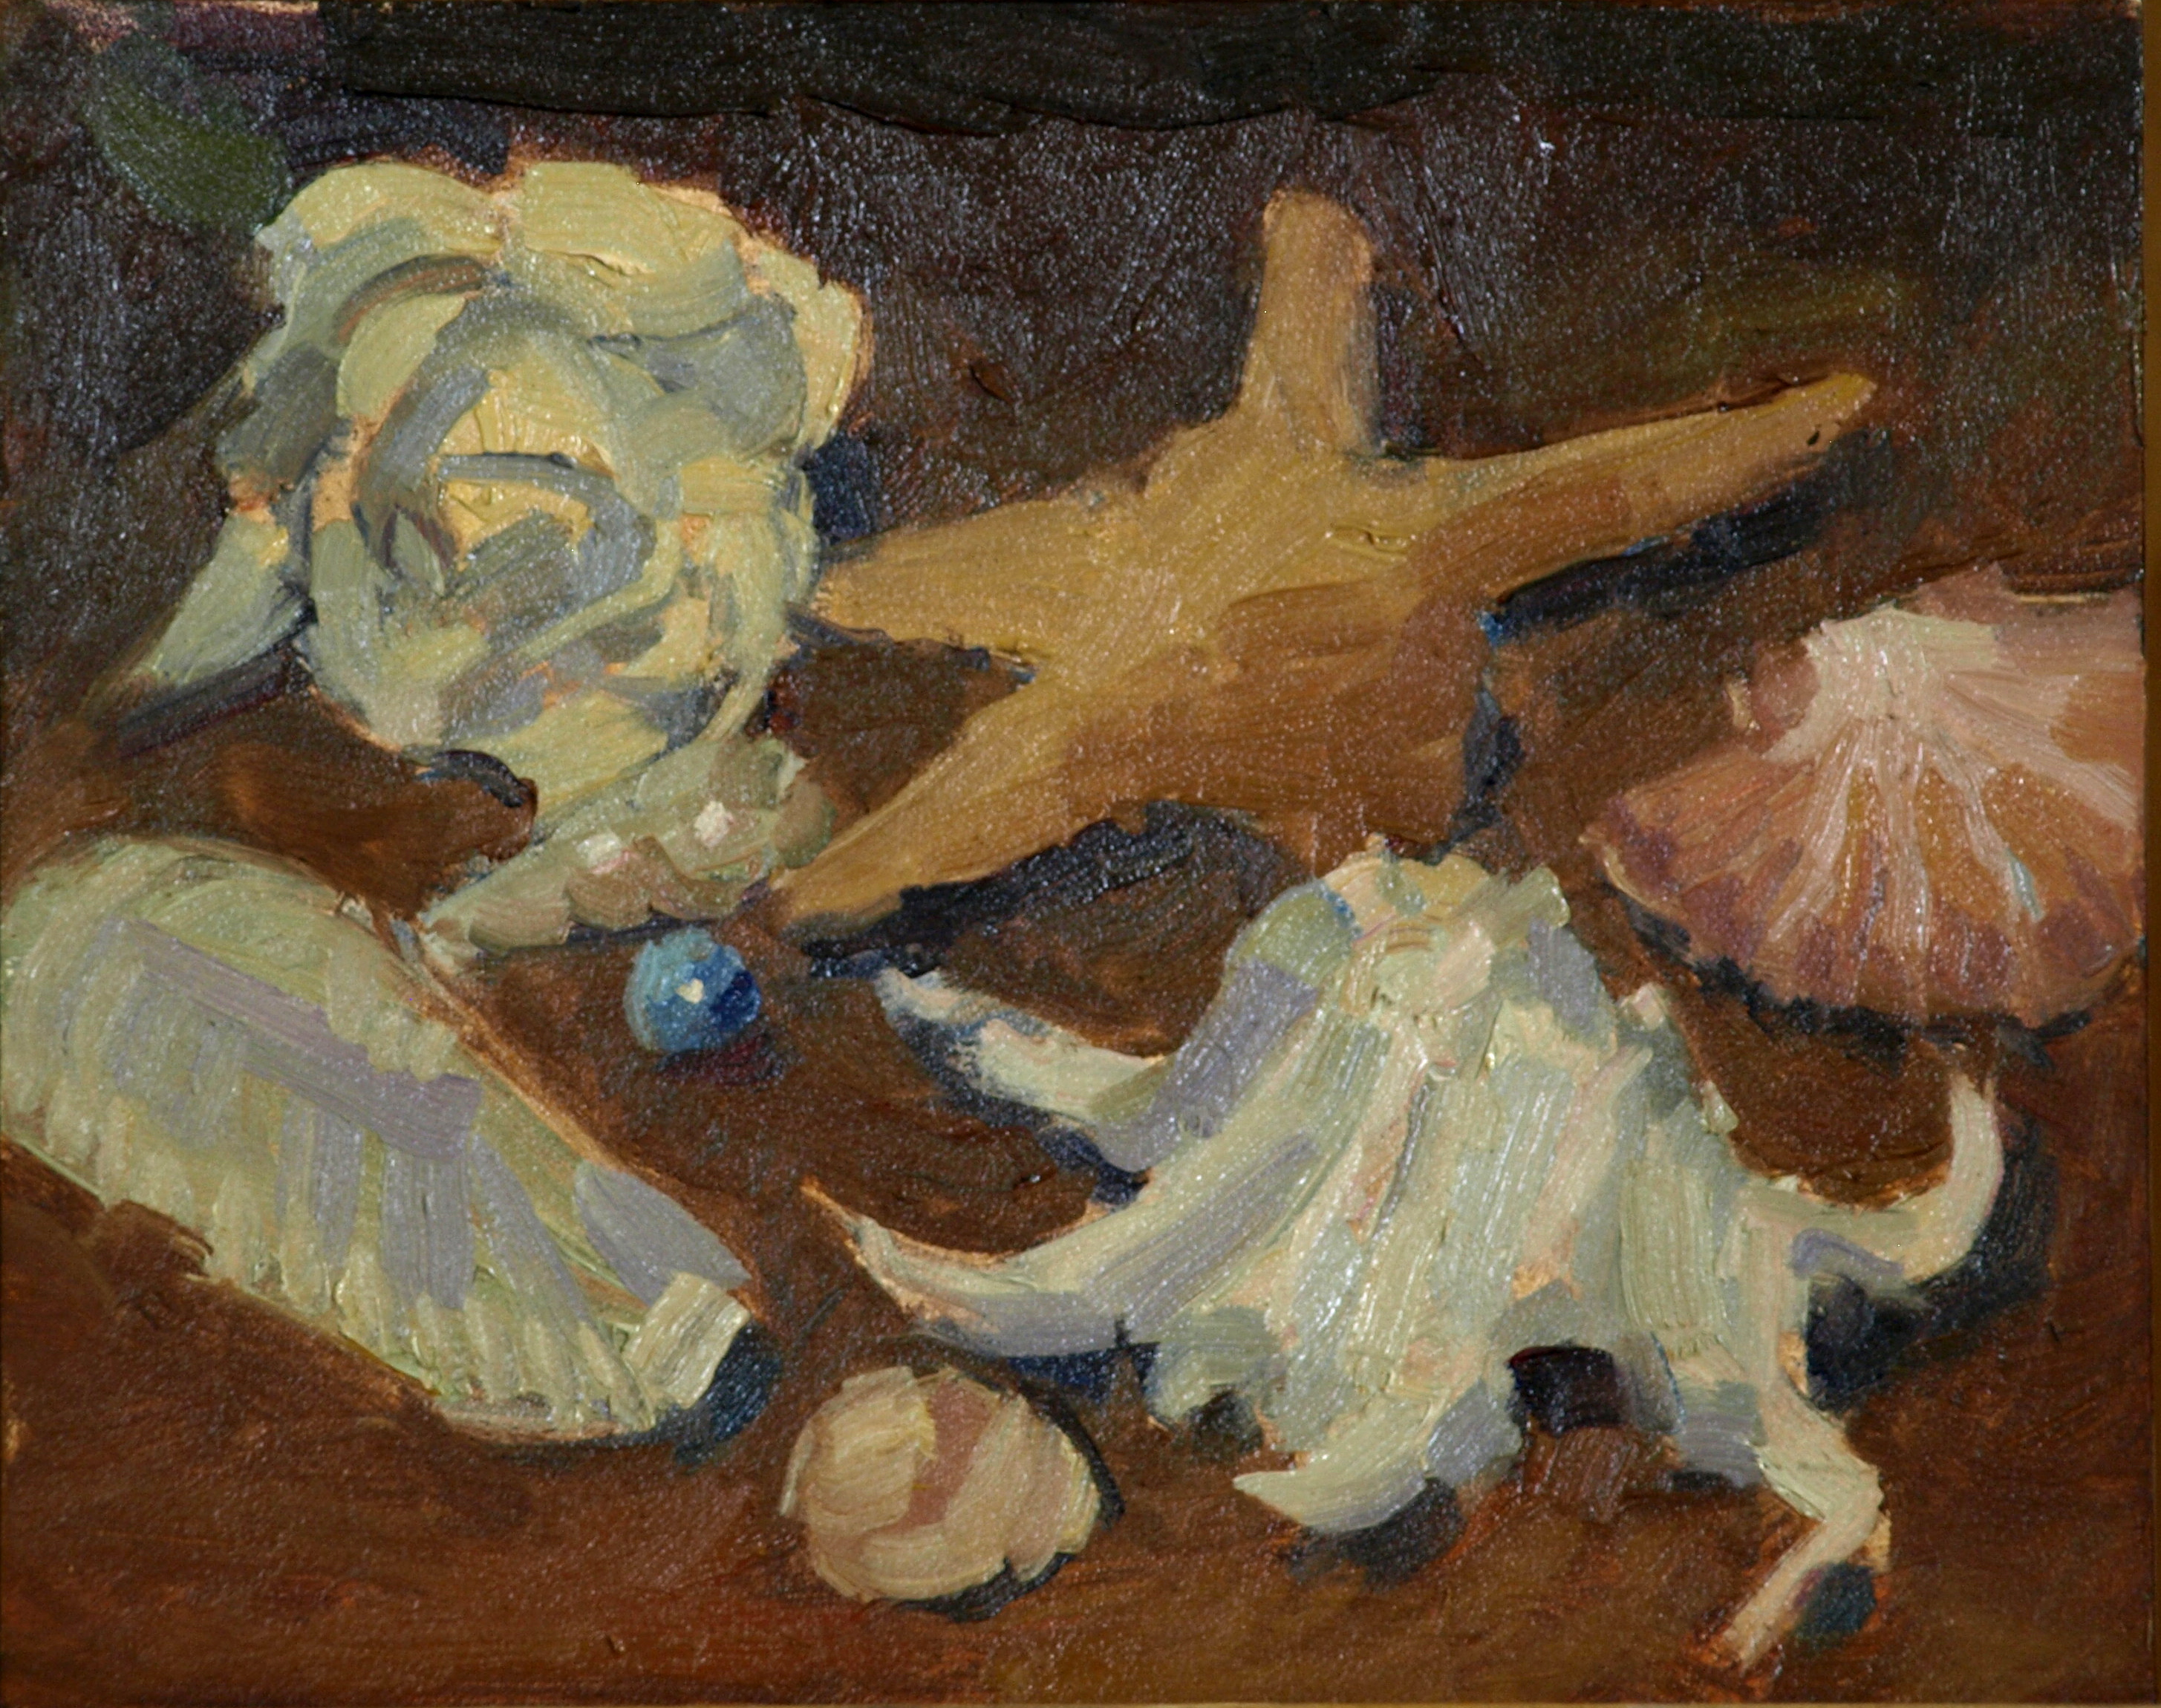 Shells, Oil on Panel, 8 x 10 Inches, by Susan Grisell, $150